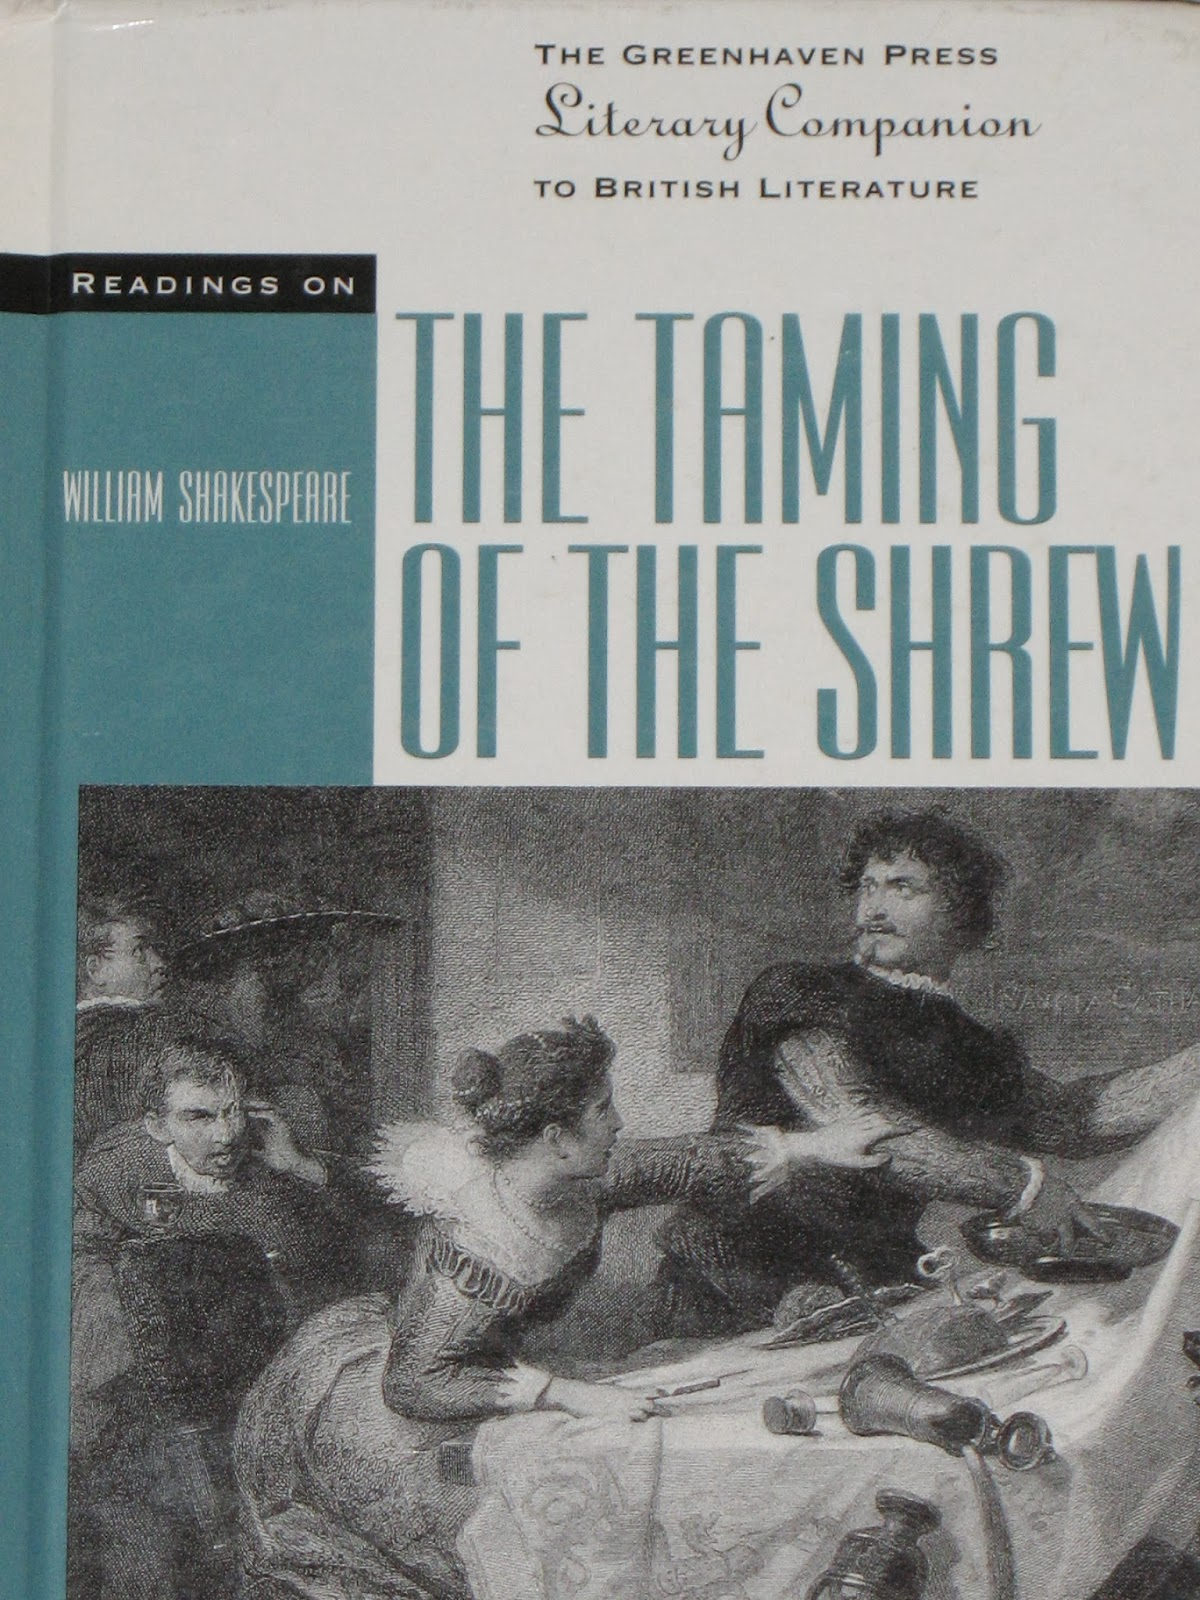 mostly shakespeare but also some occasional nonsense readings on the taming of the shrew edited by laura marvel this is a volume in the greenhaven press literary companion series and is a collection of